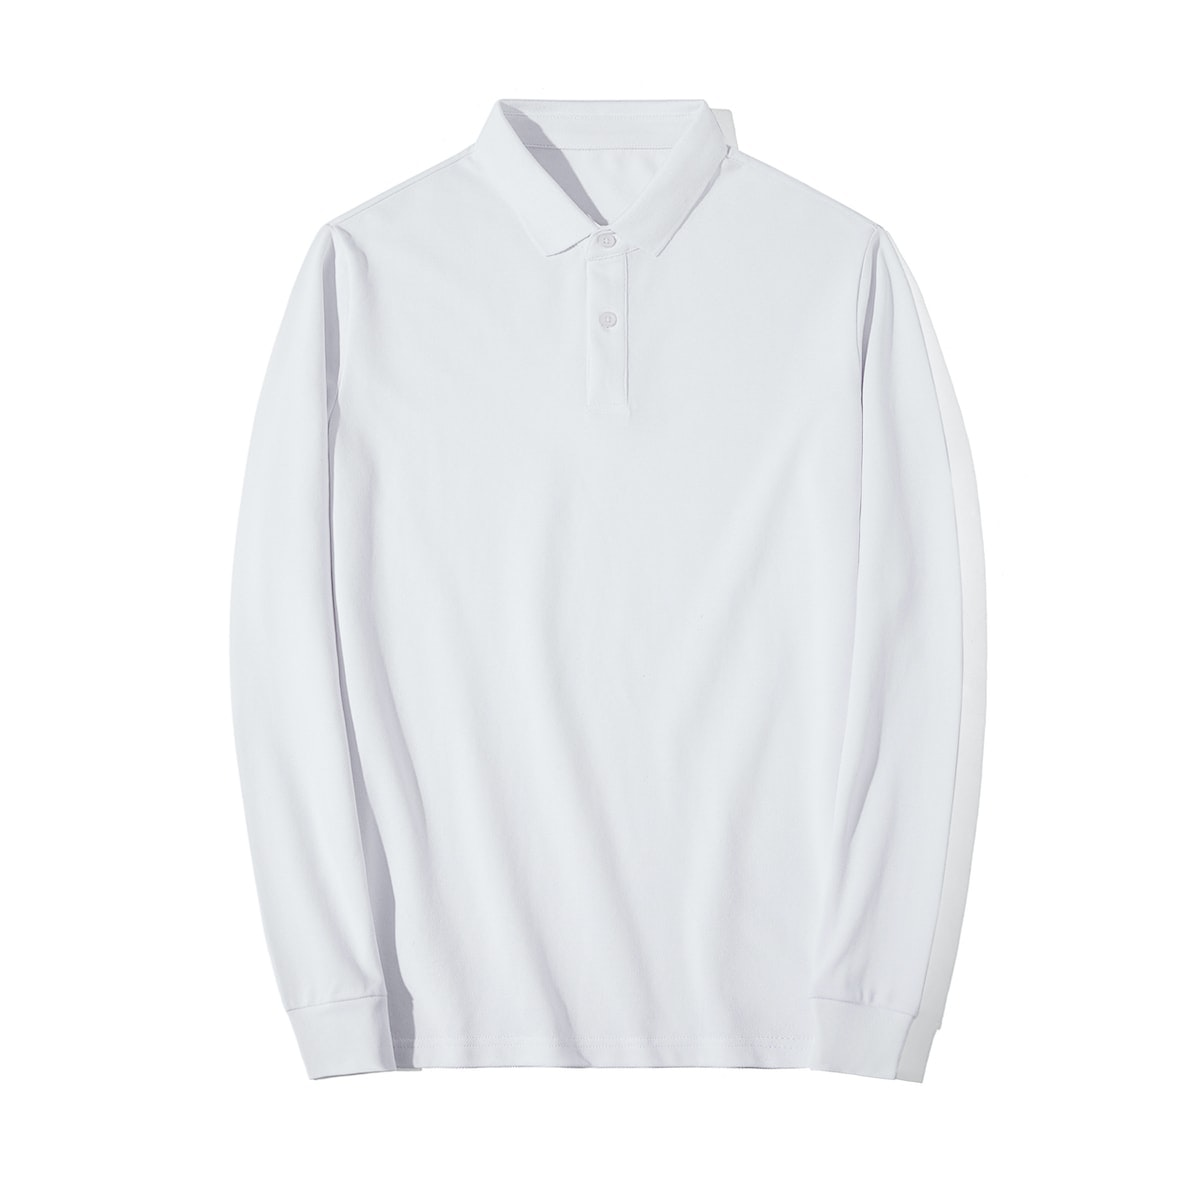 InStitchu Collection Murray White Cotton Long Sleeve Polo